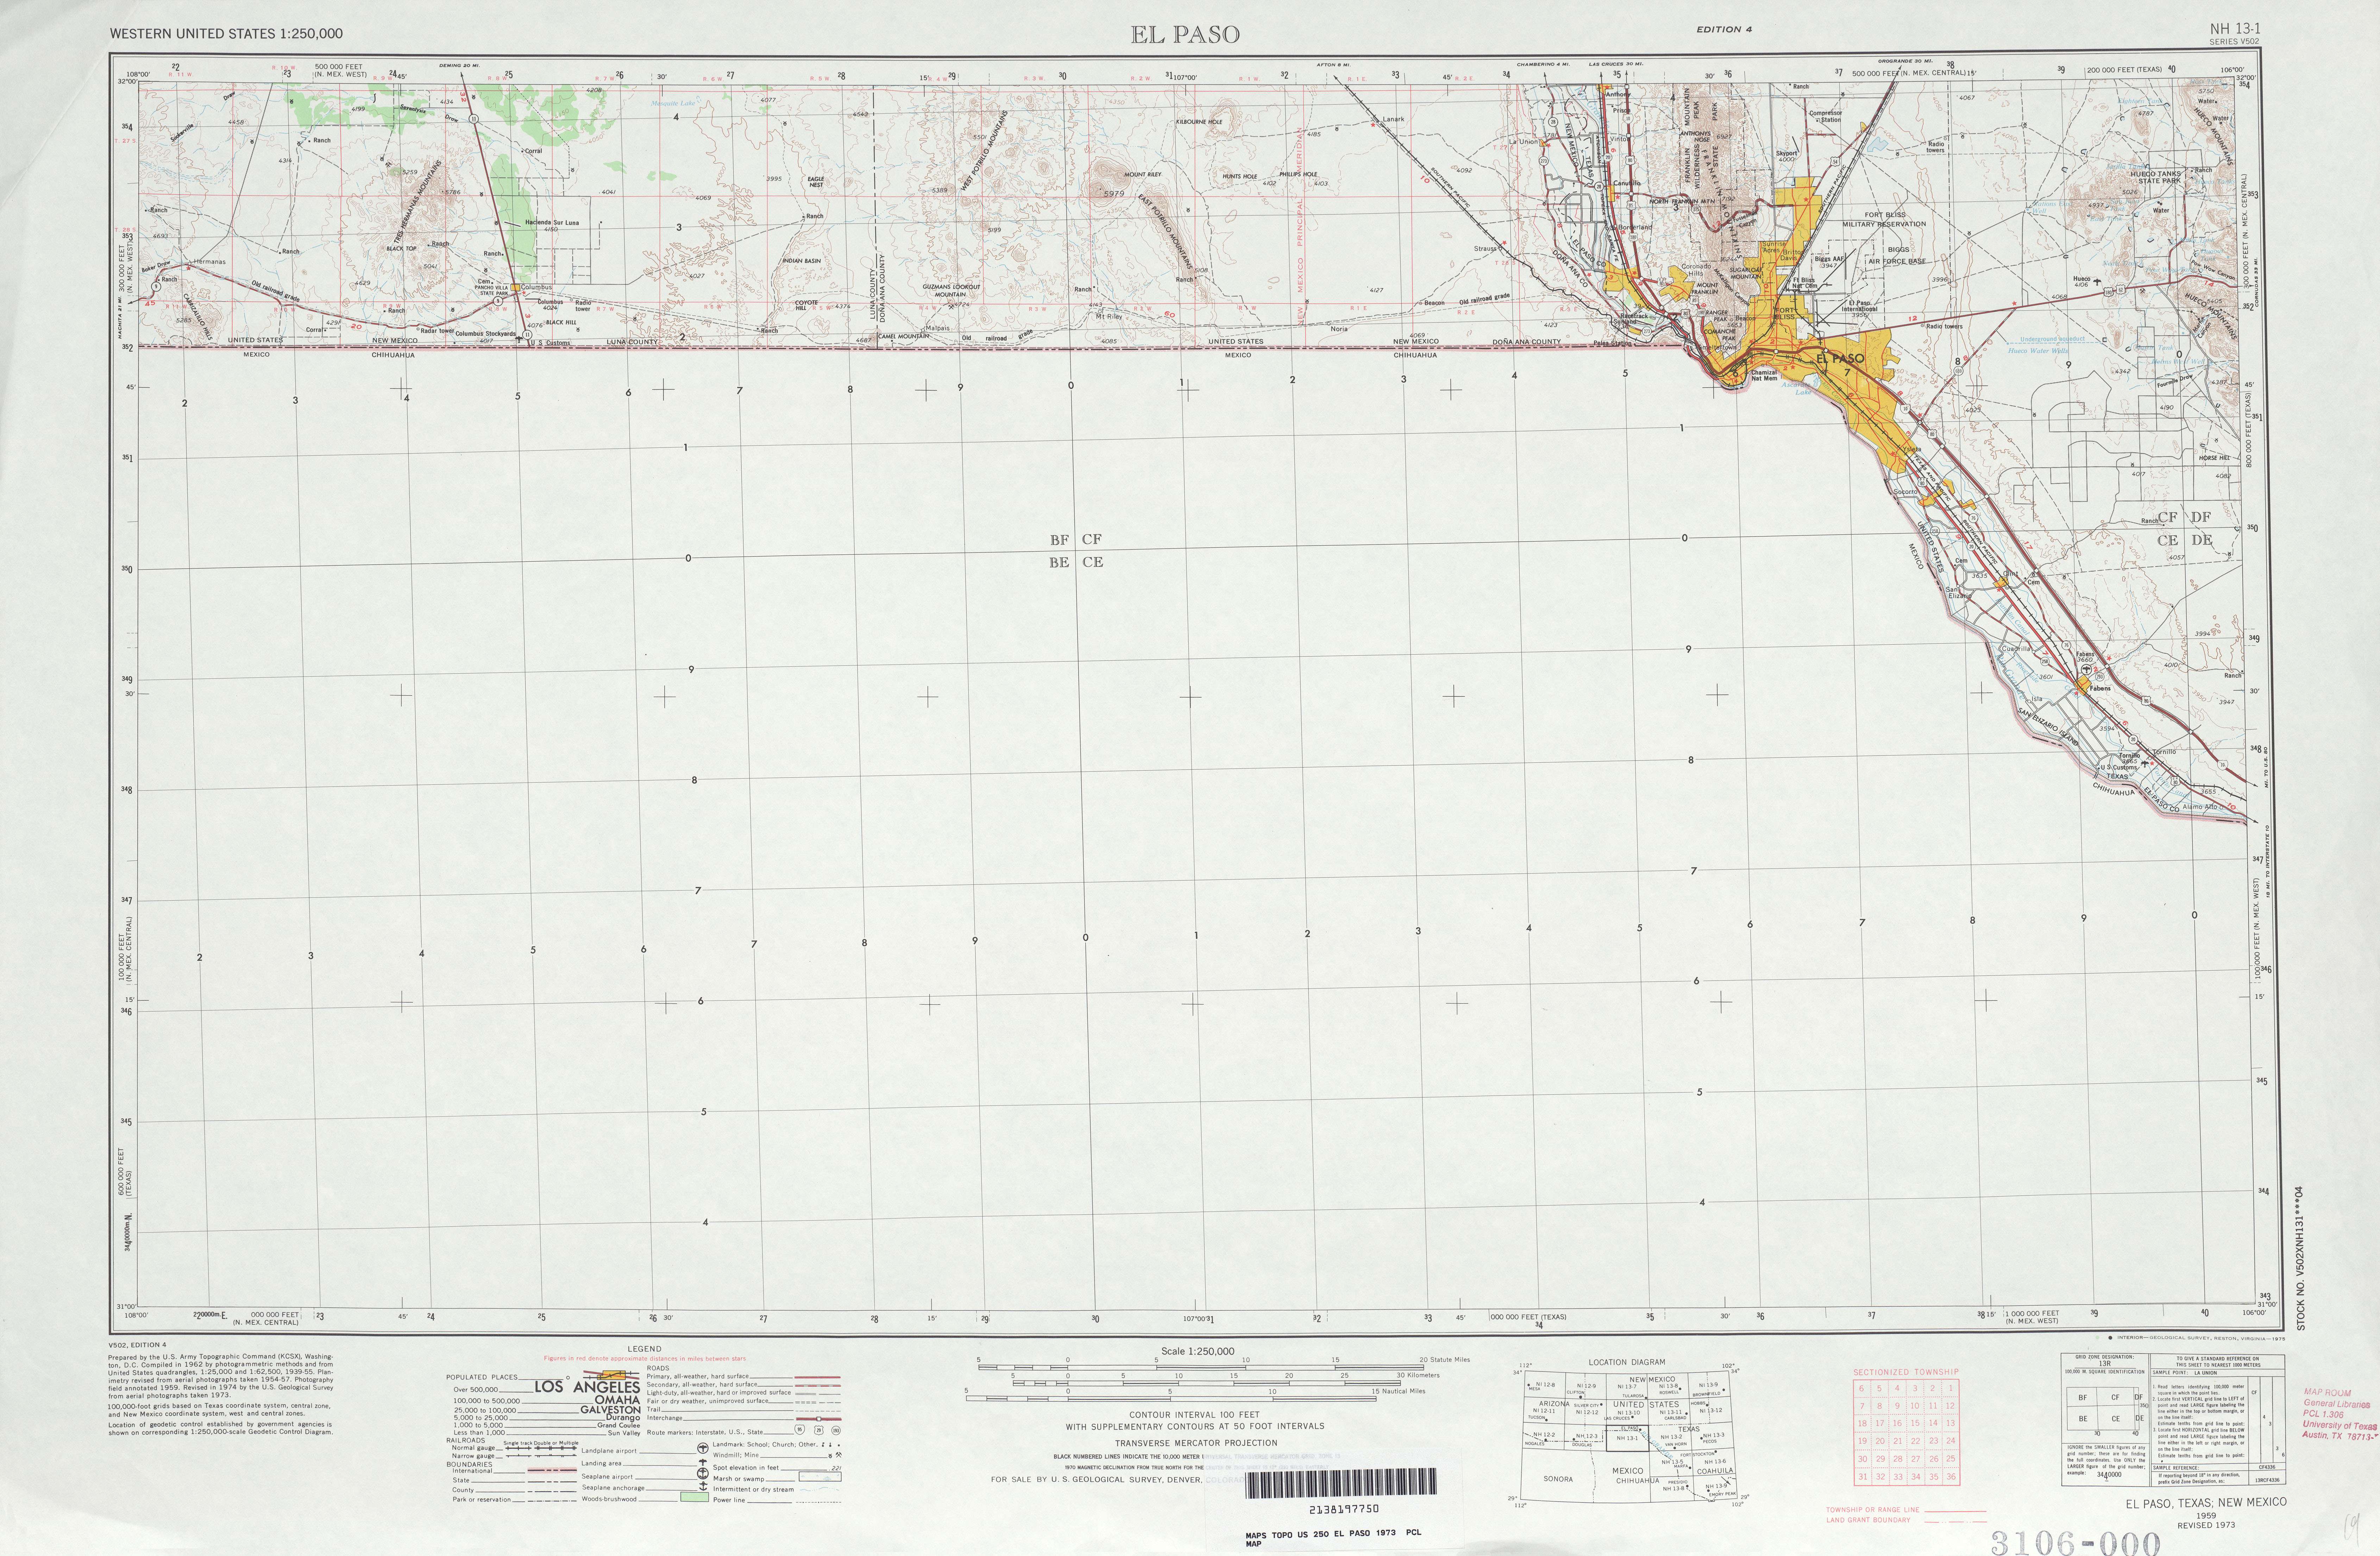 El Paso Topographic Map Sheet, United States 1973